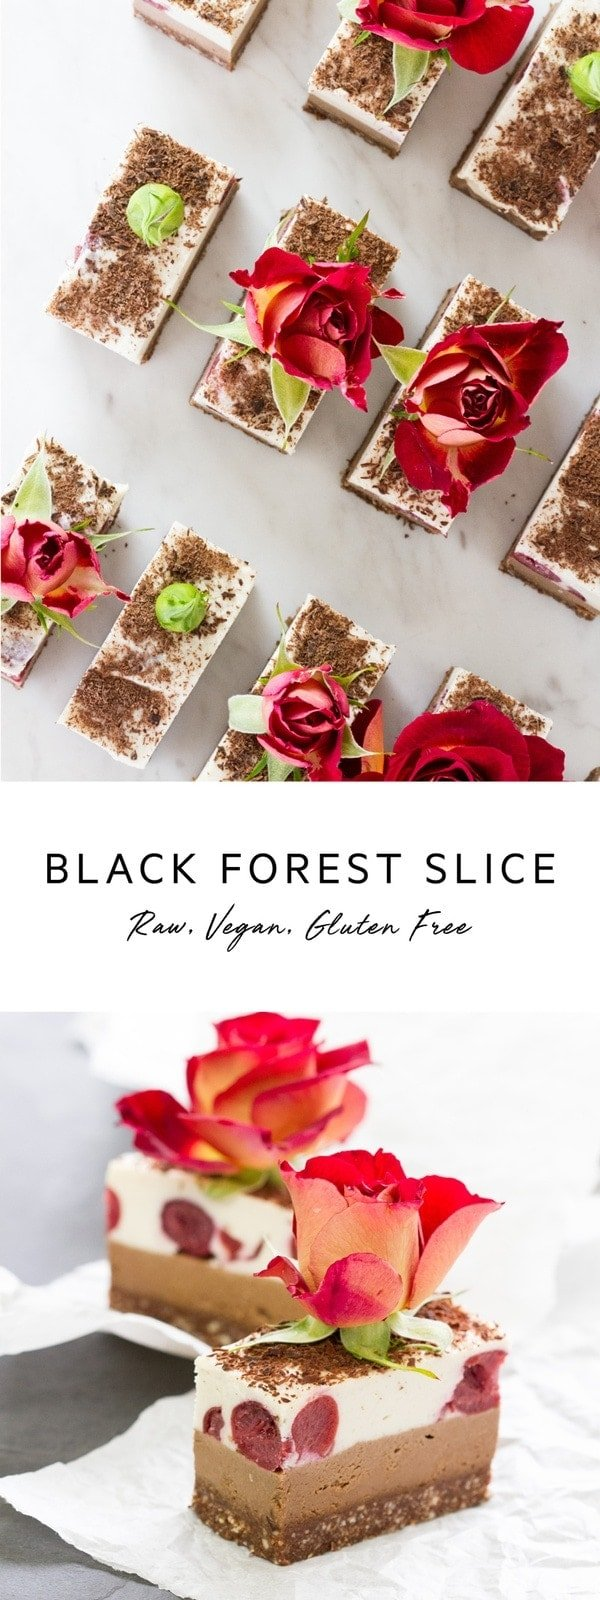 Raw Black Forest Slice. A light raw vegan dessert. #vegandessert #rawslice #rawdessert #blackforest #AscensionKitchen